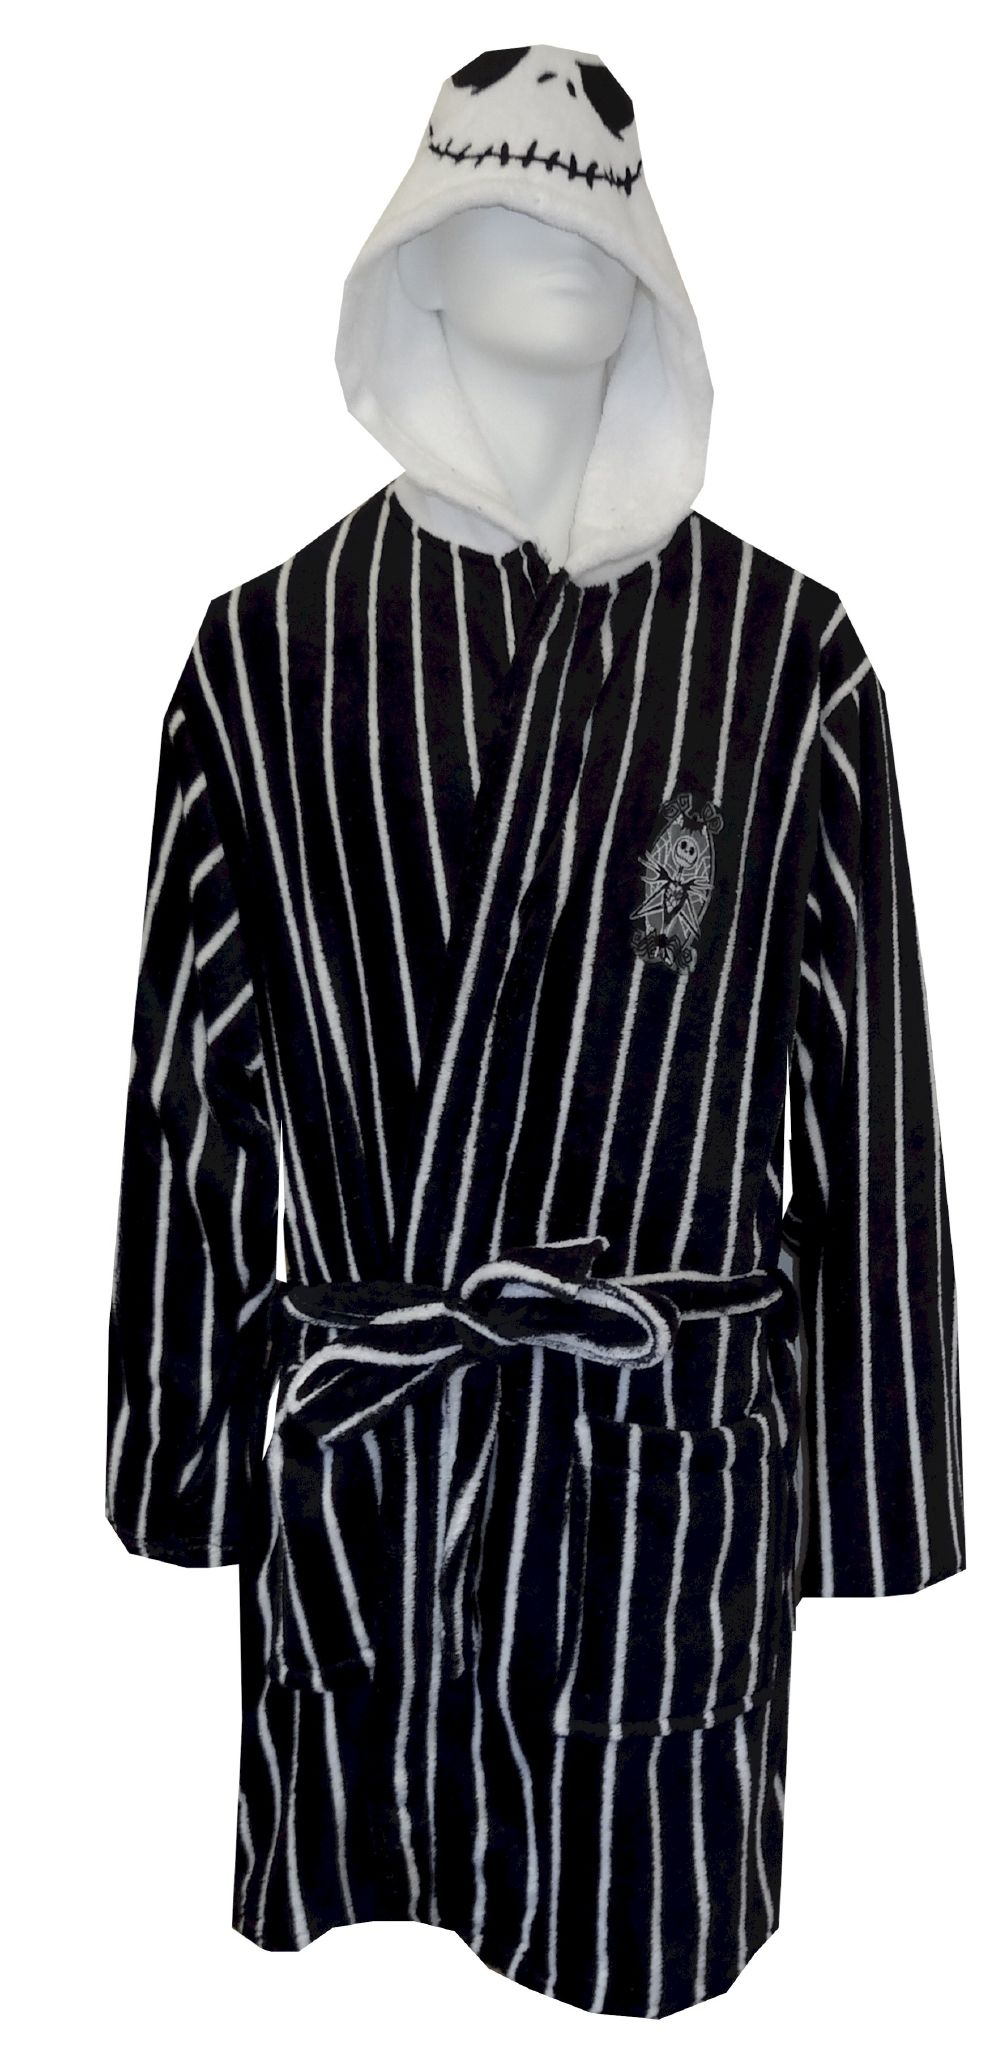 Nightmare Before Christmas Jack Skellington Plush Robe Perfect for ...